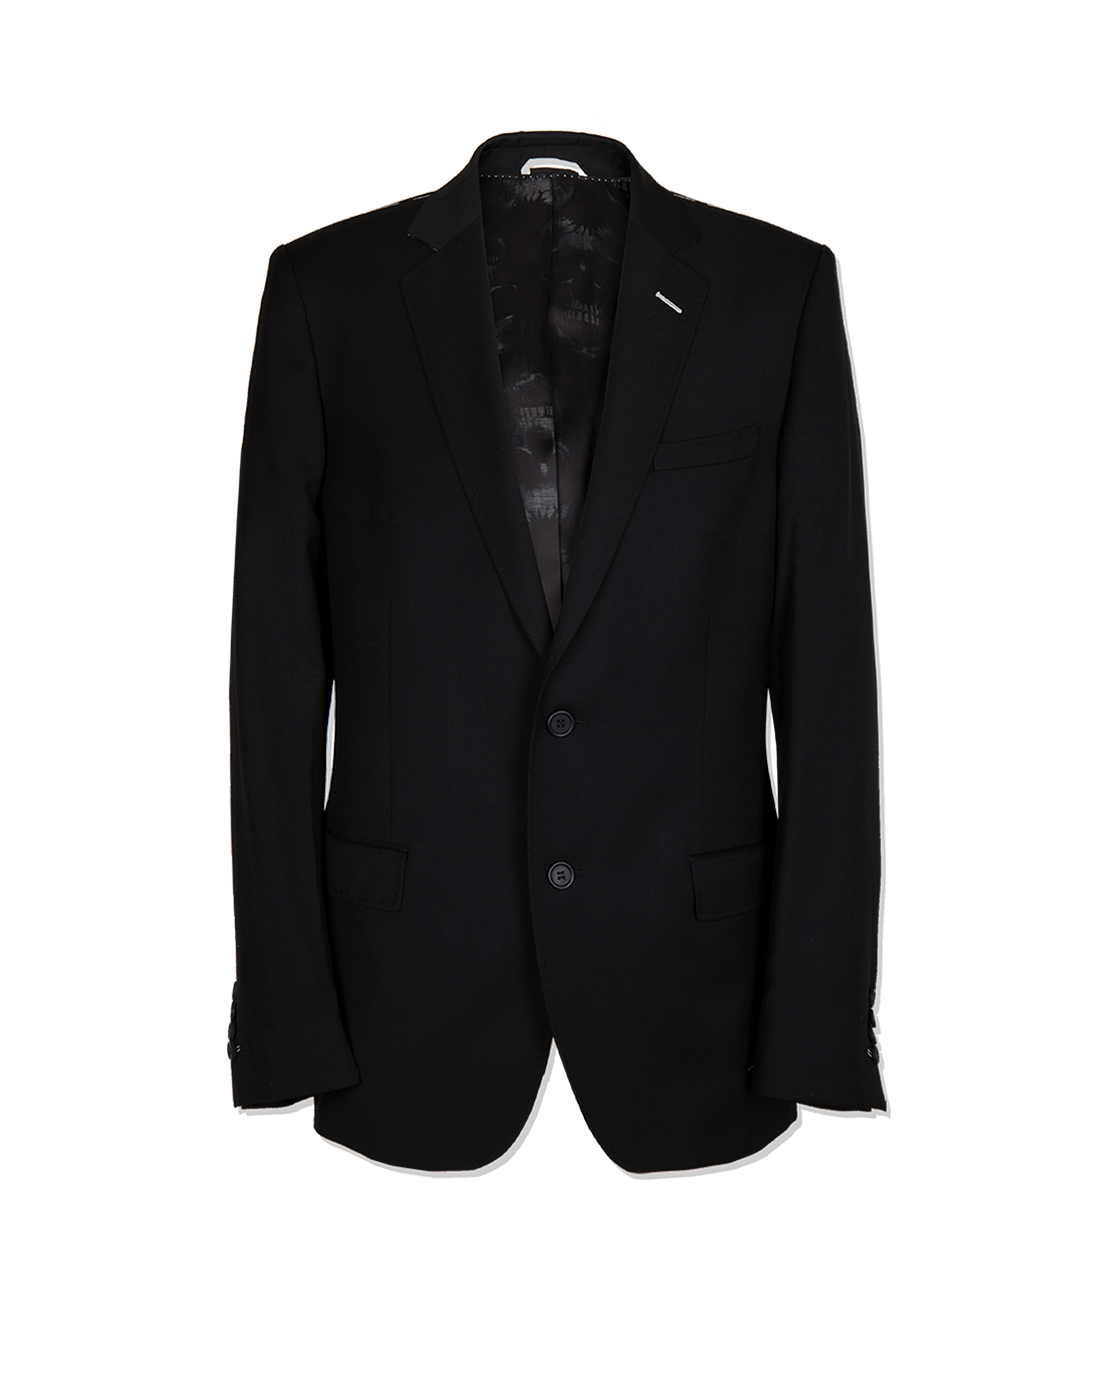 3 Piece Suit in Black Gabardine - Holland Esquire